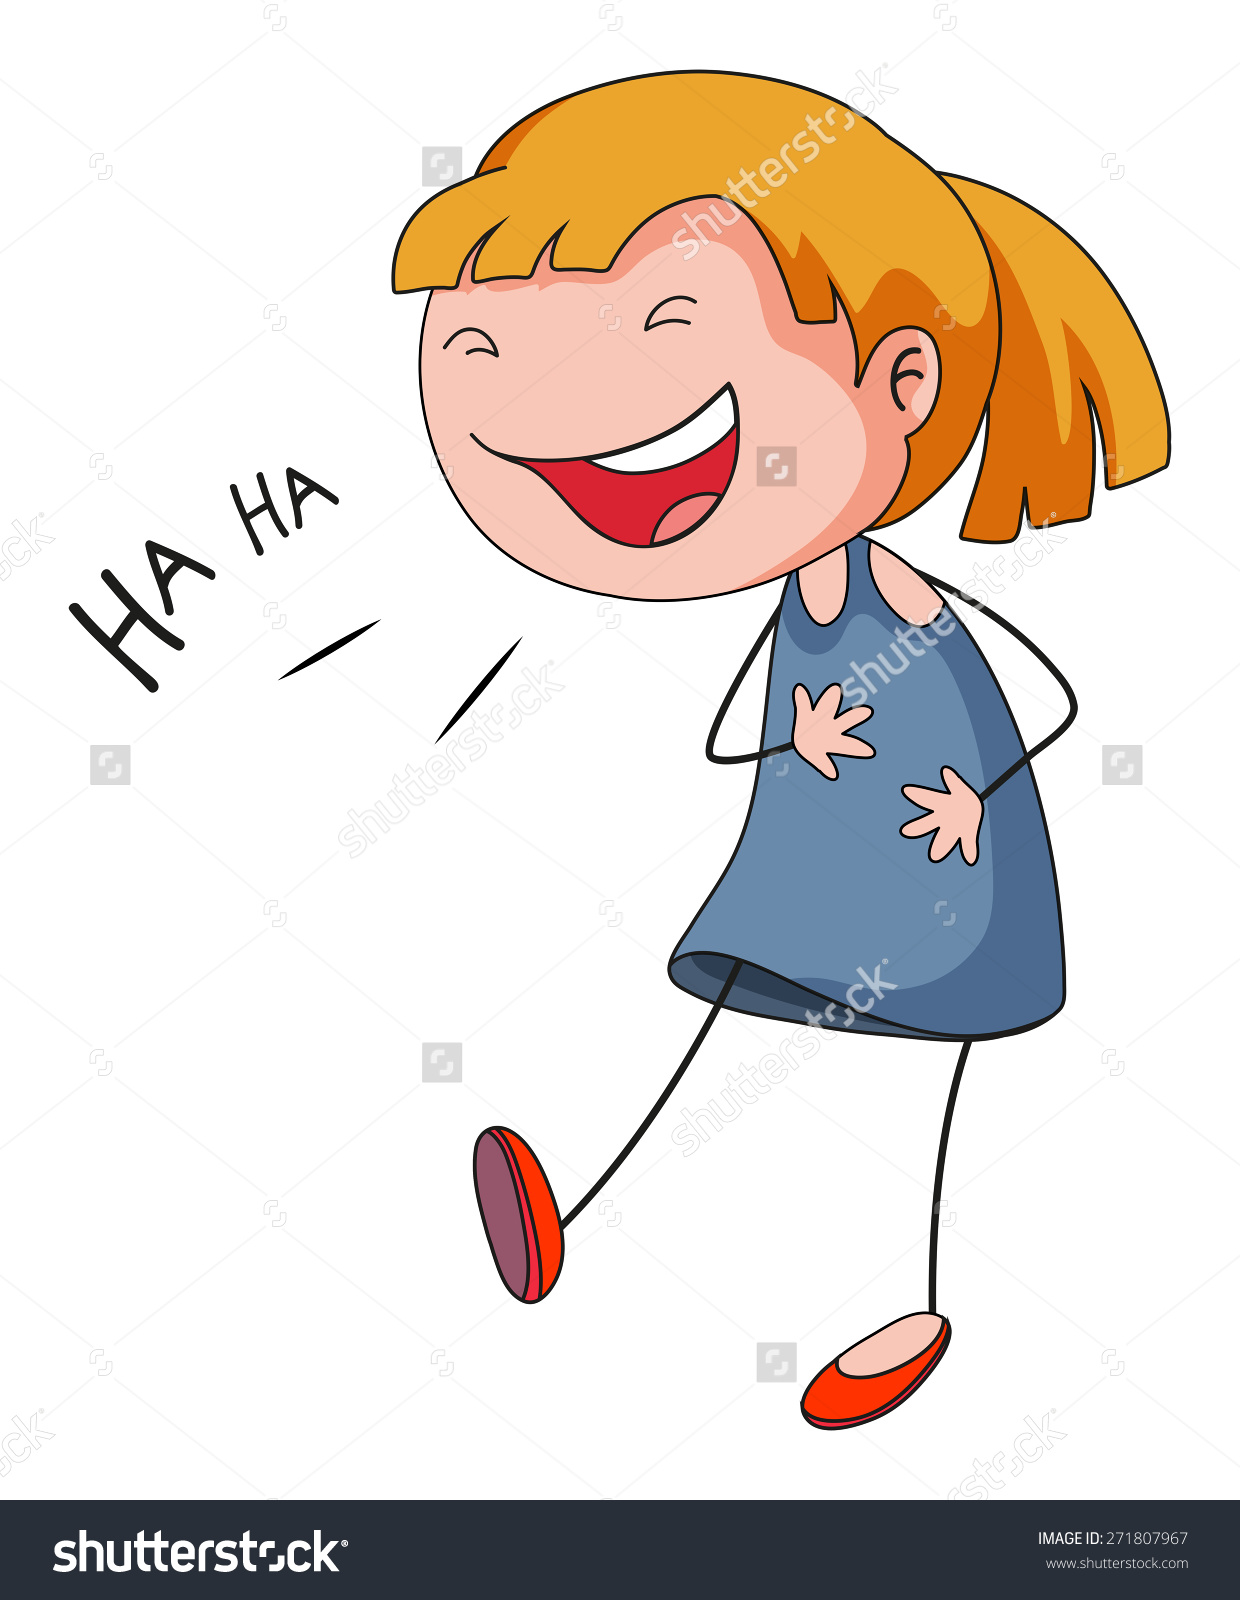 laughter image clipart free download best laughter image